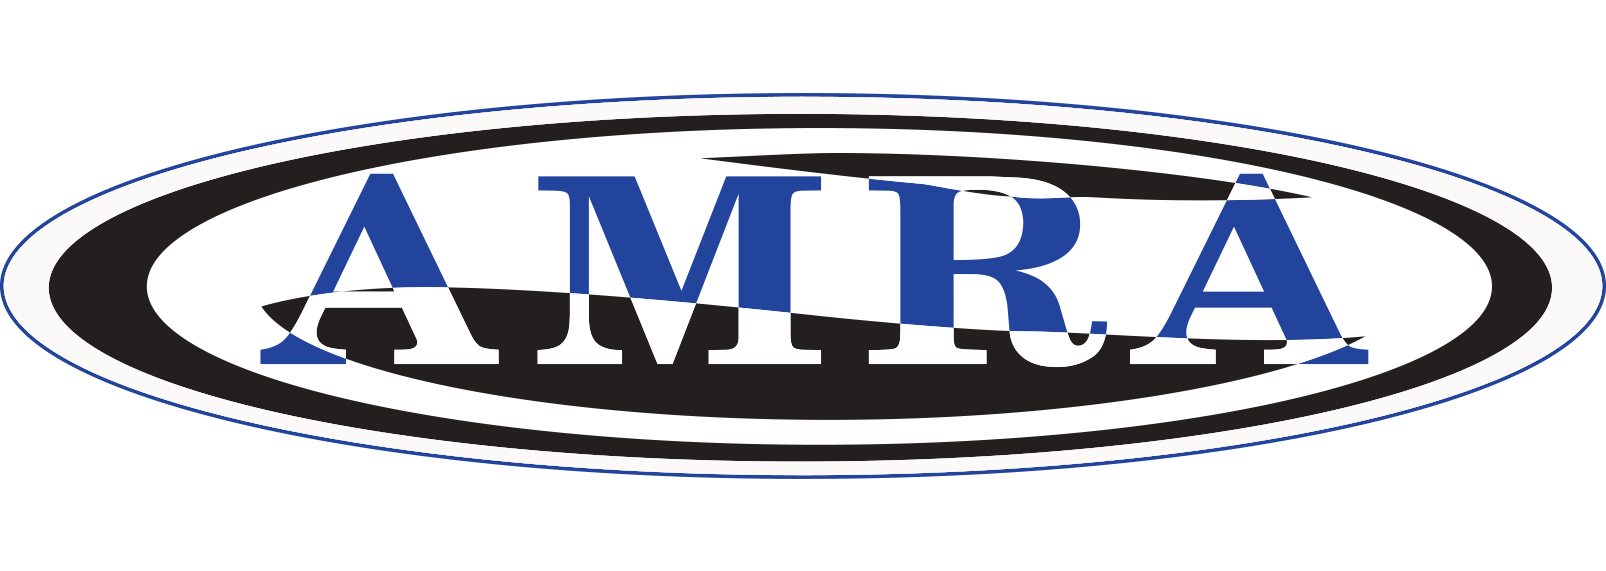 American Motorcycle Racing Association Bowling Green, KY @ Beech Bend Raceway